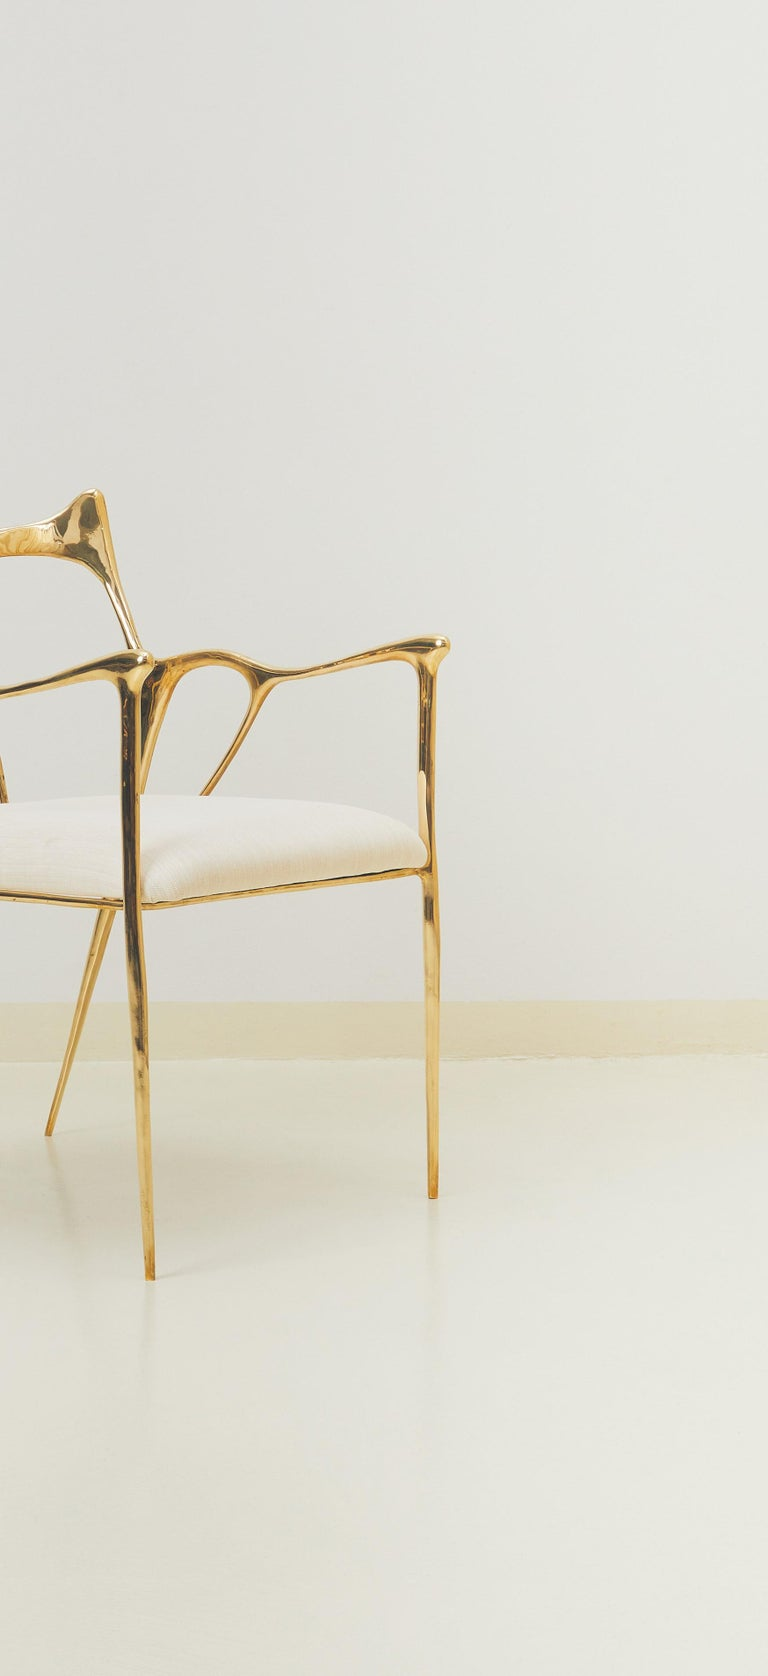 Thai Calligraphic Sculpted Brass Chair by Misaya For Sale